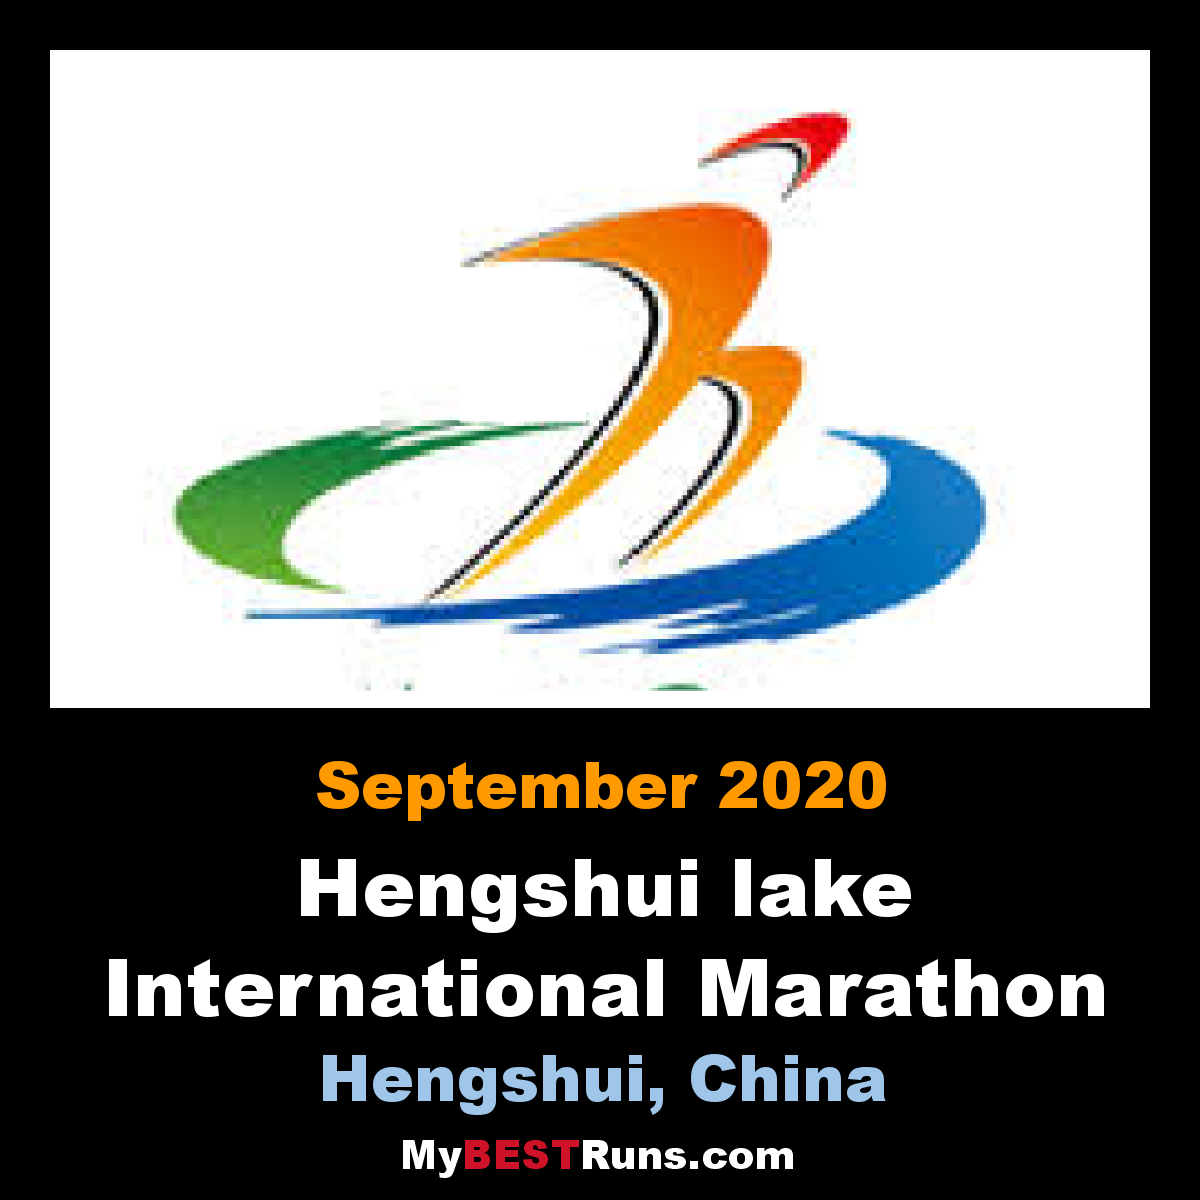 Hengshui lake International Marathon